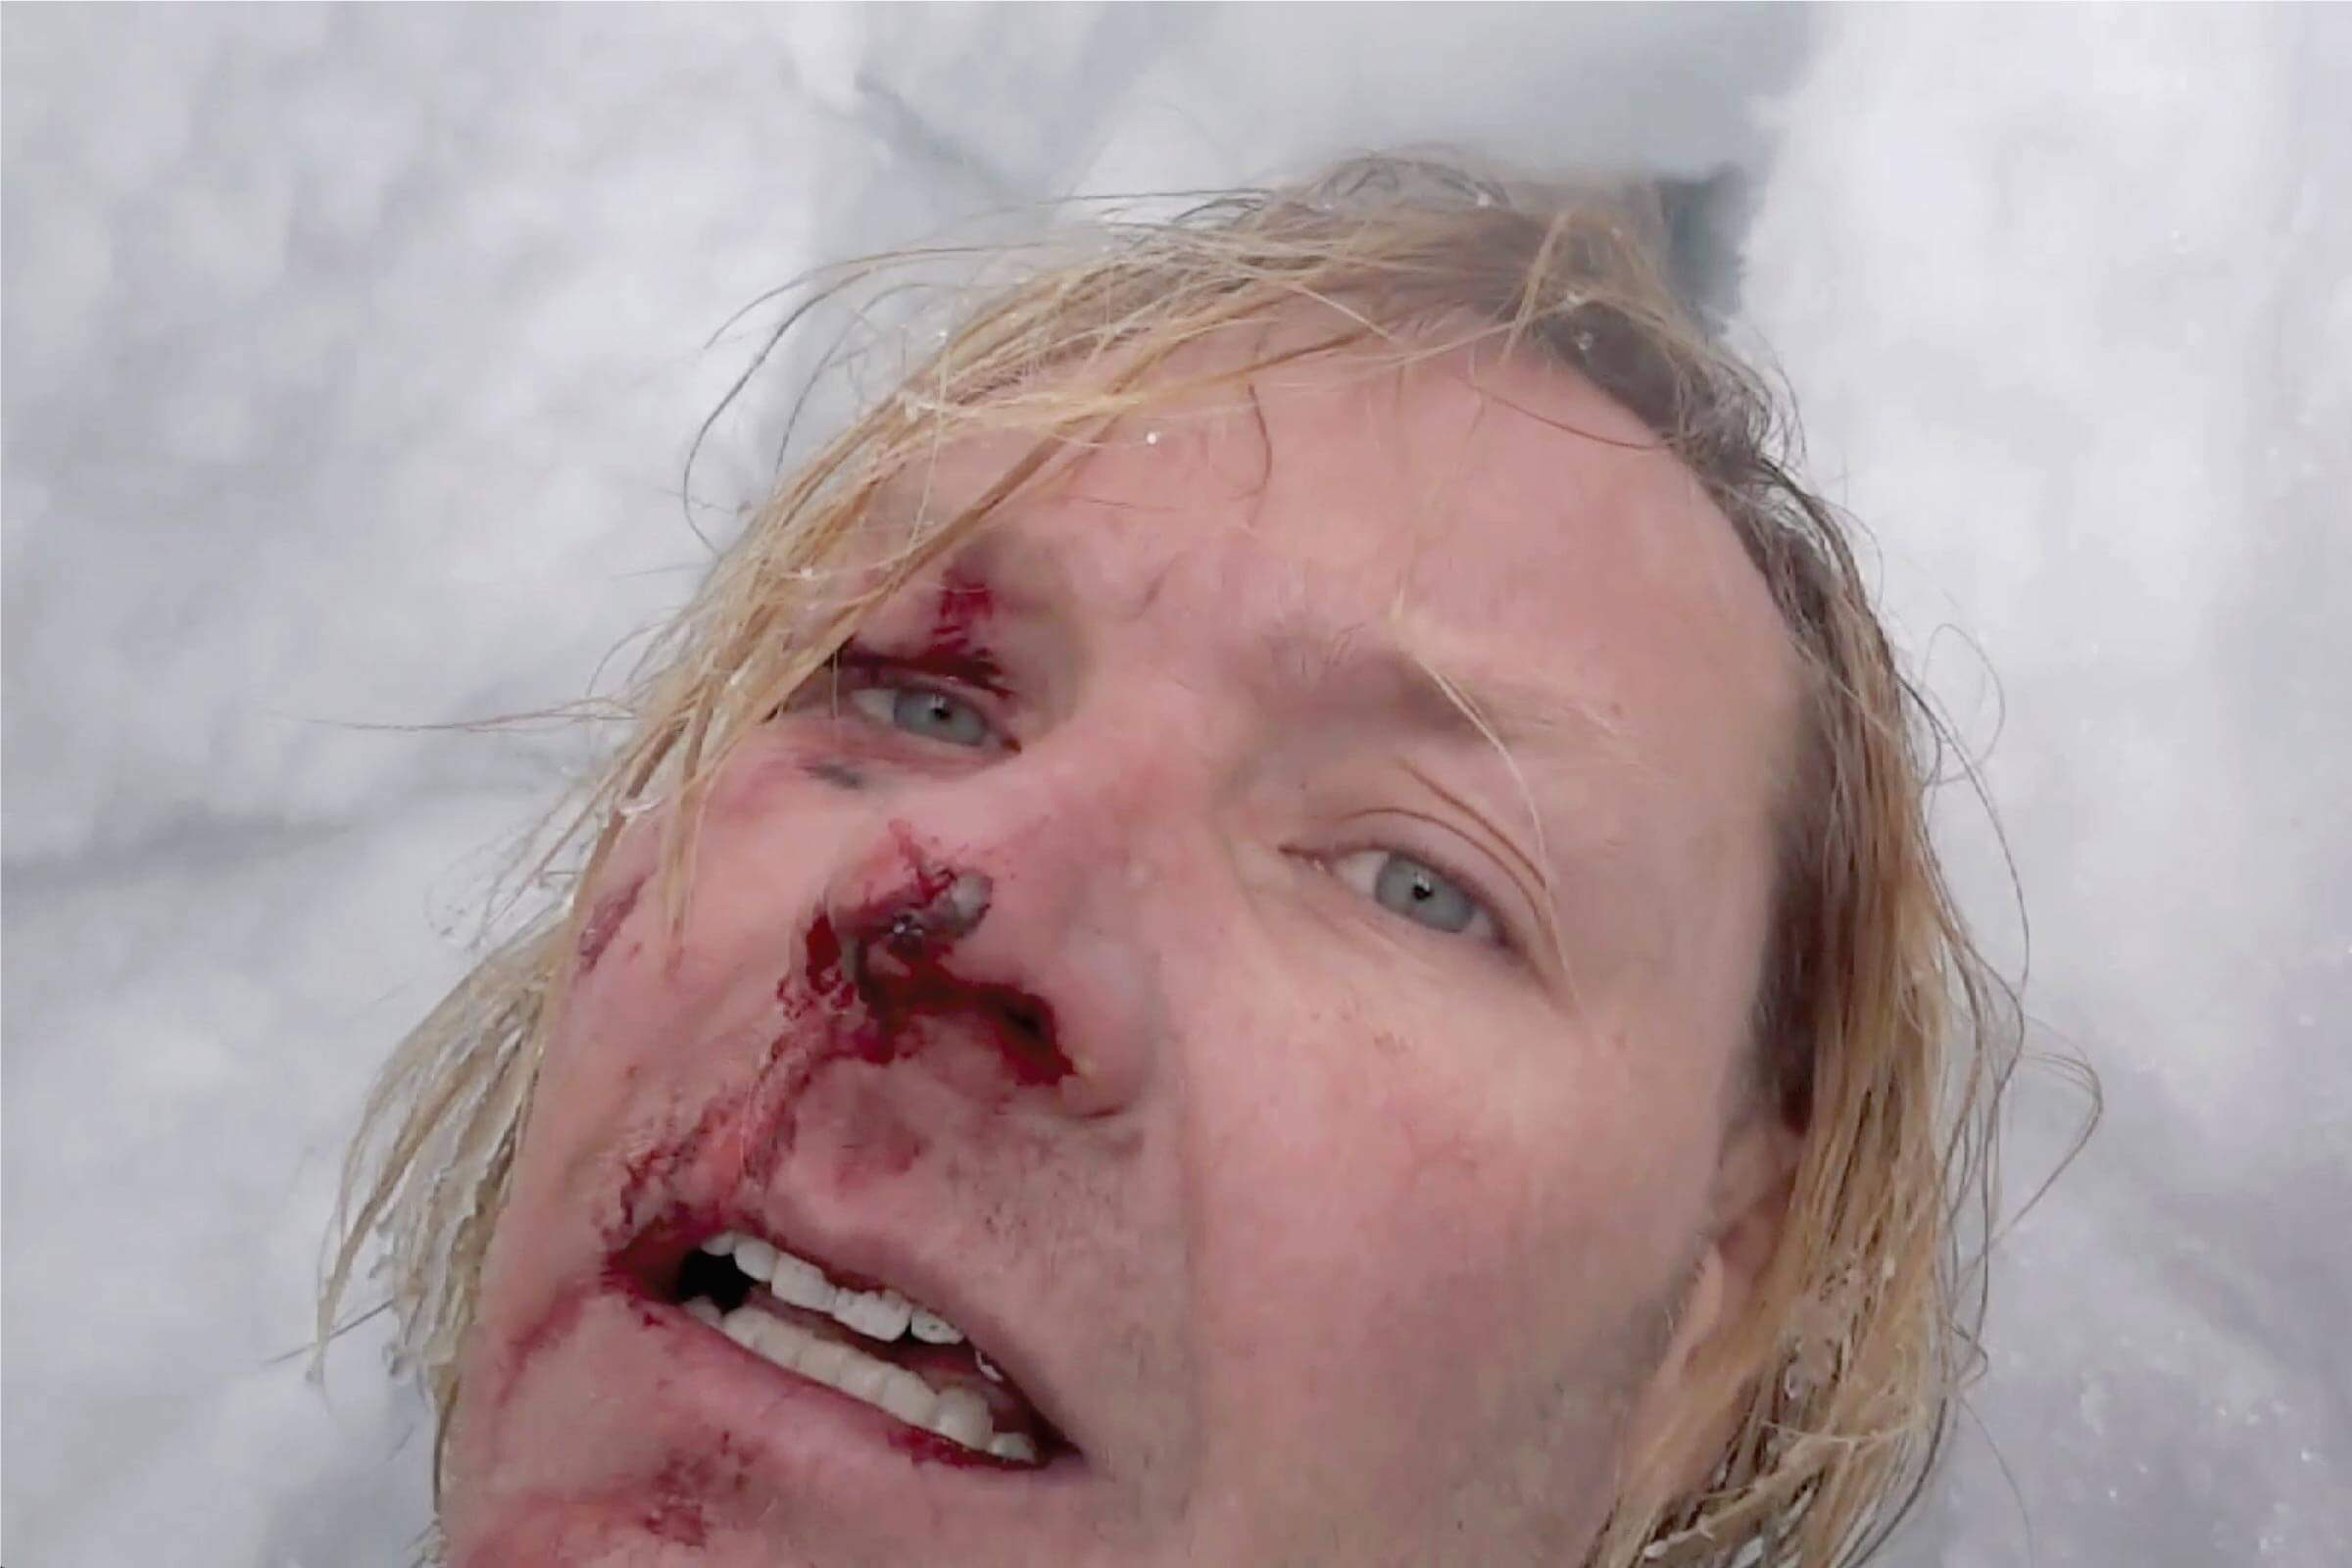 John All's face after falling